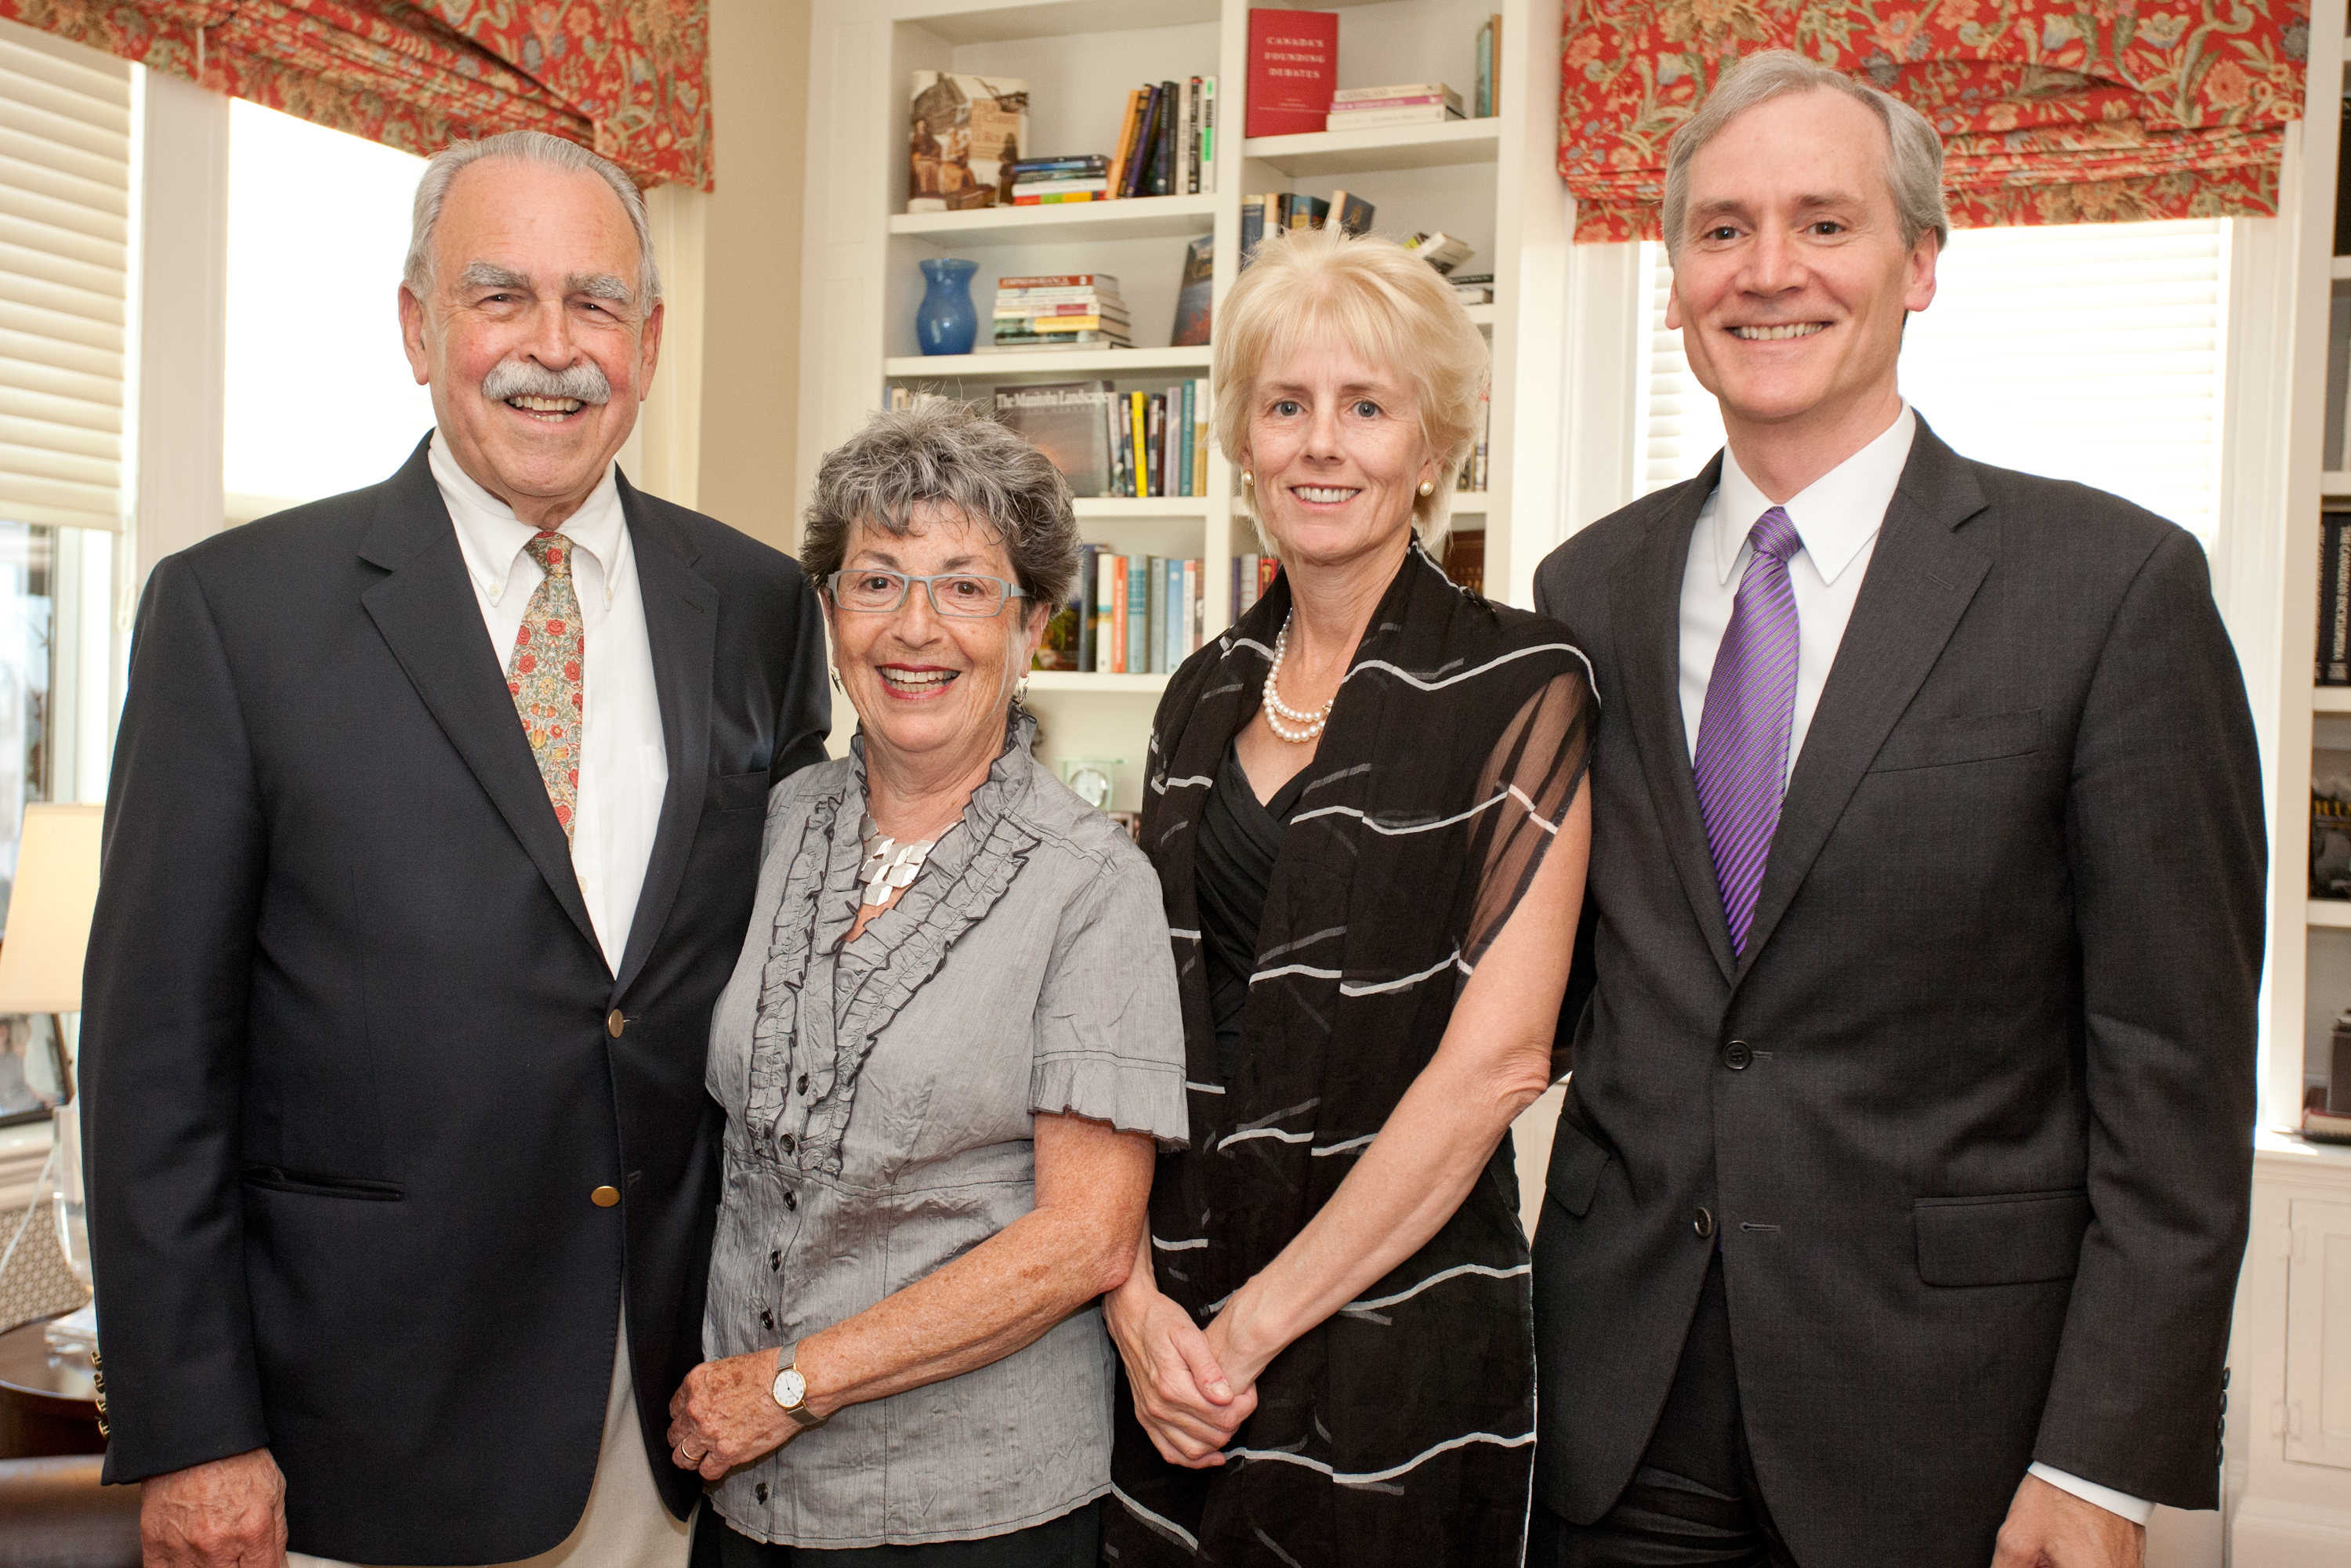 From left to right: Dr. Aubie Angel (President, Friends of CIHR) & Mrs. Esther-Rose Angel and Dr. Mary Hynes & Dr. Marc Tessier-Lavigne (President, Rockefeller University)